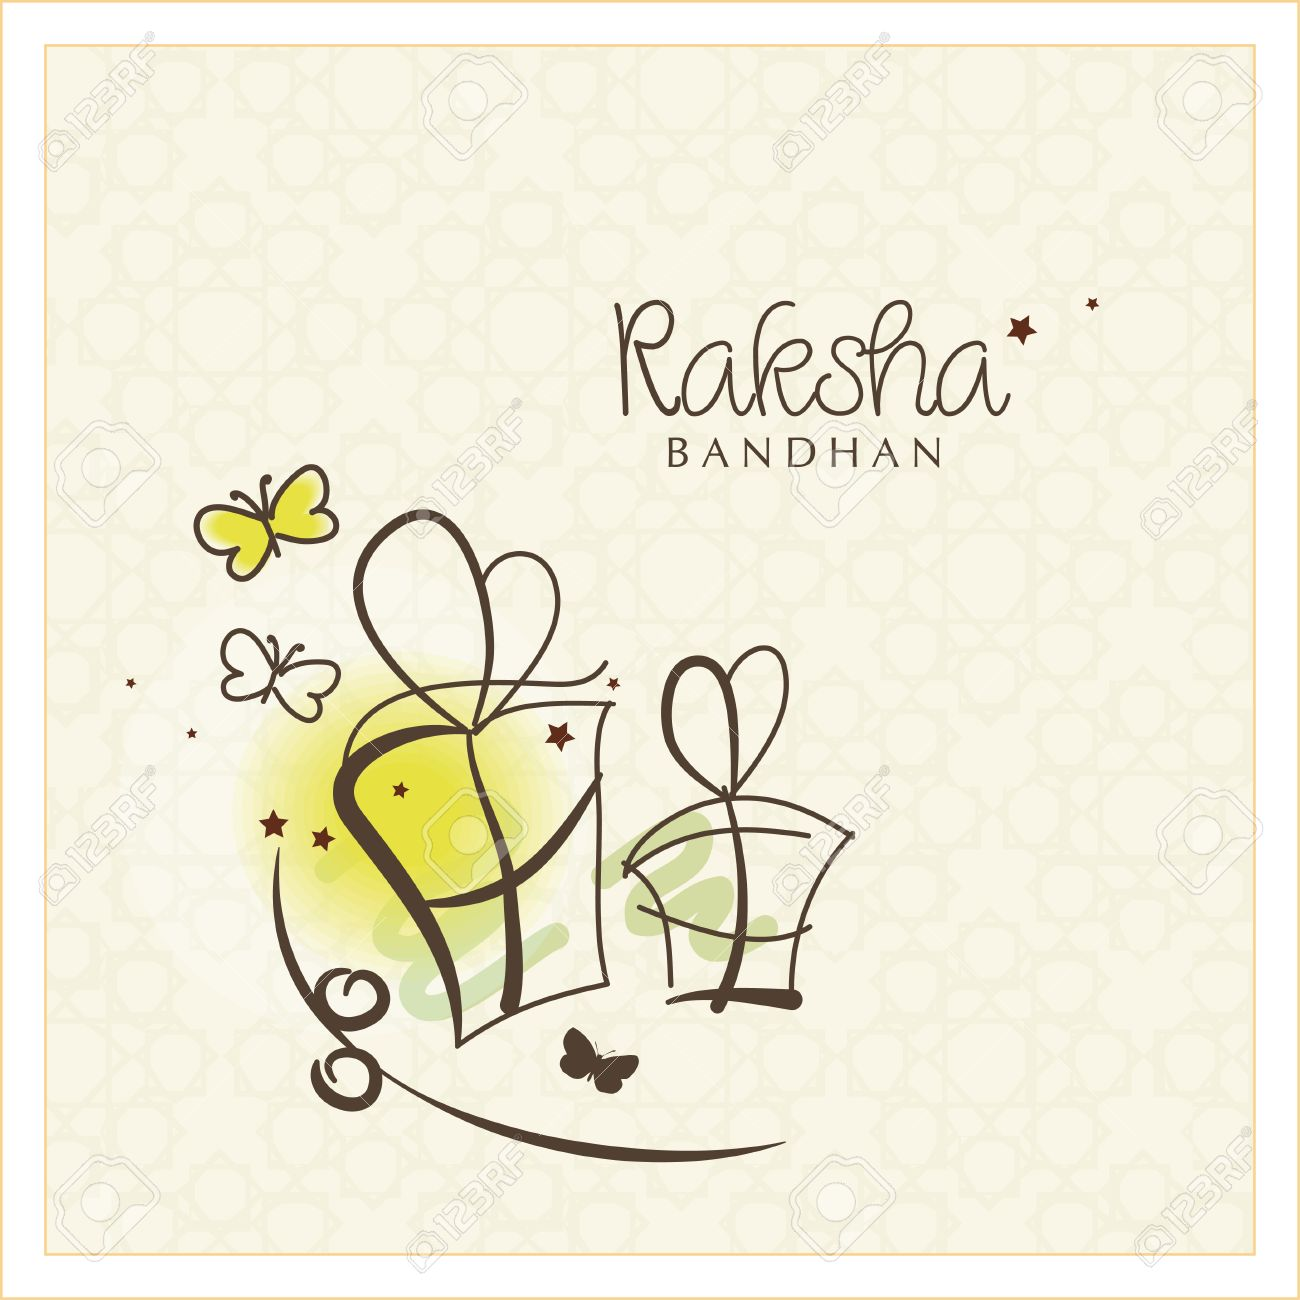 Beautiful Greeting Card Design For The Indian Festival Raksha